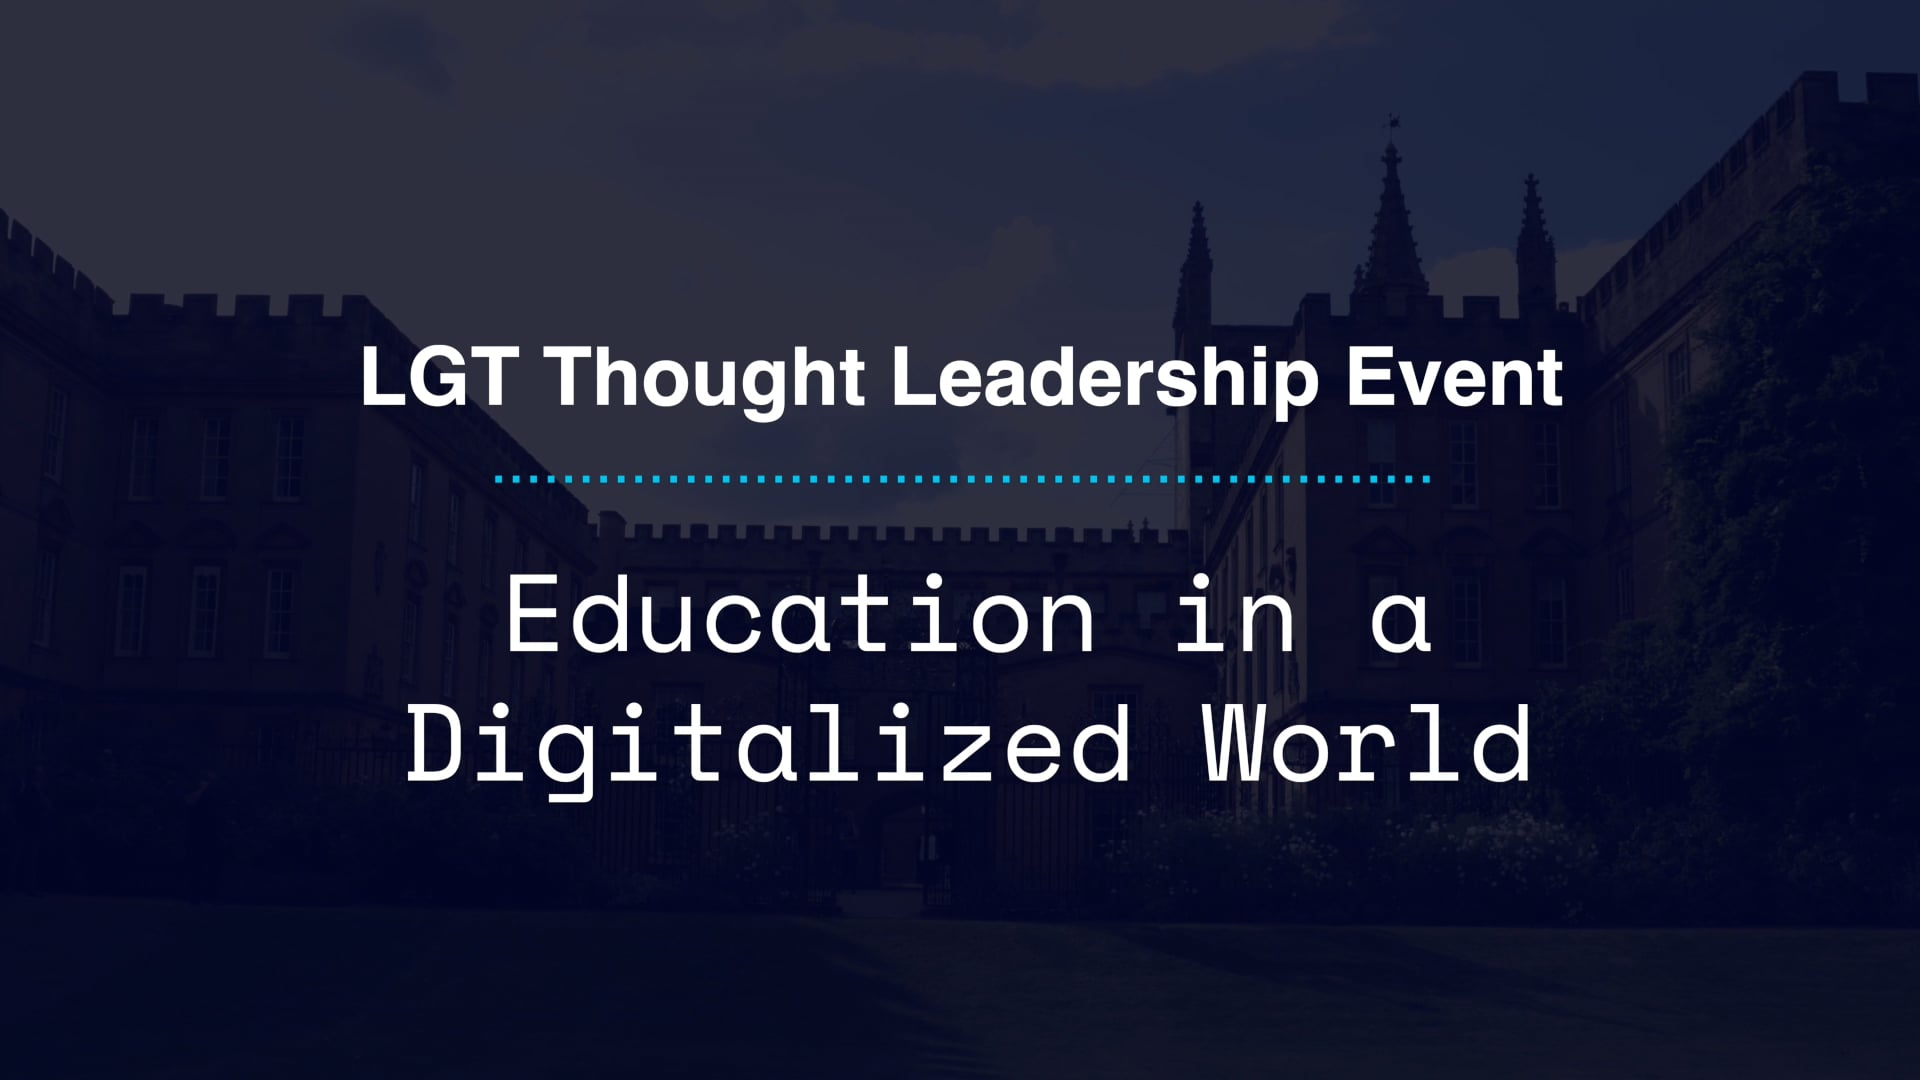 The LGT Thought Leadership Event 'Education in a Digitalized World' at New College Oxford